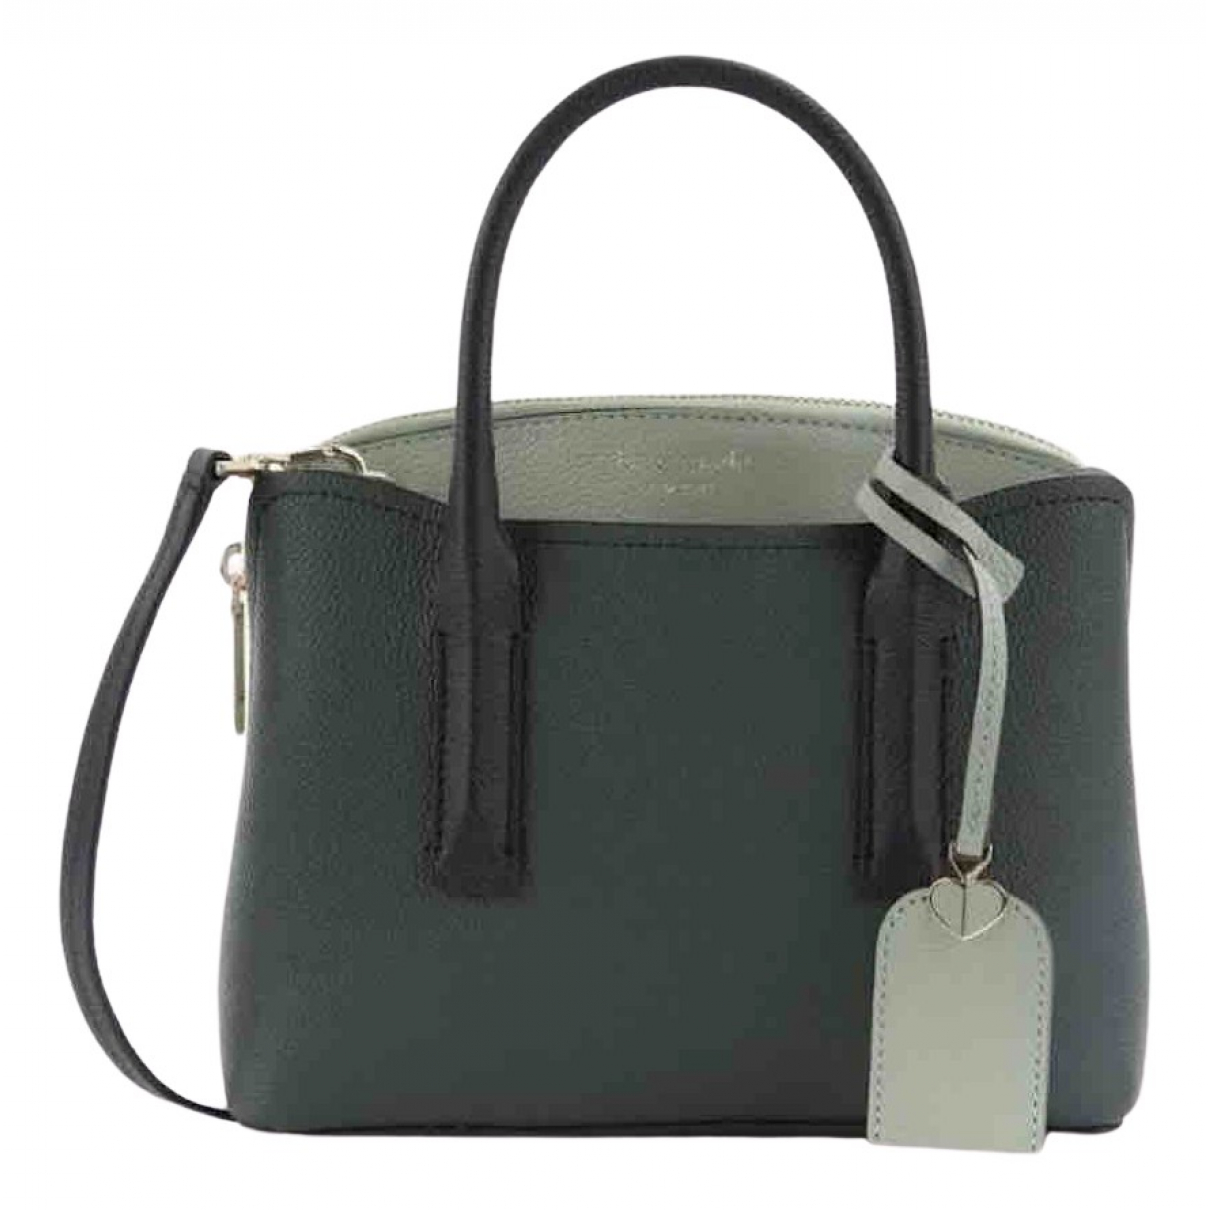 Kate Spade \N Green Leather handbag for Women \N